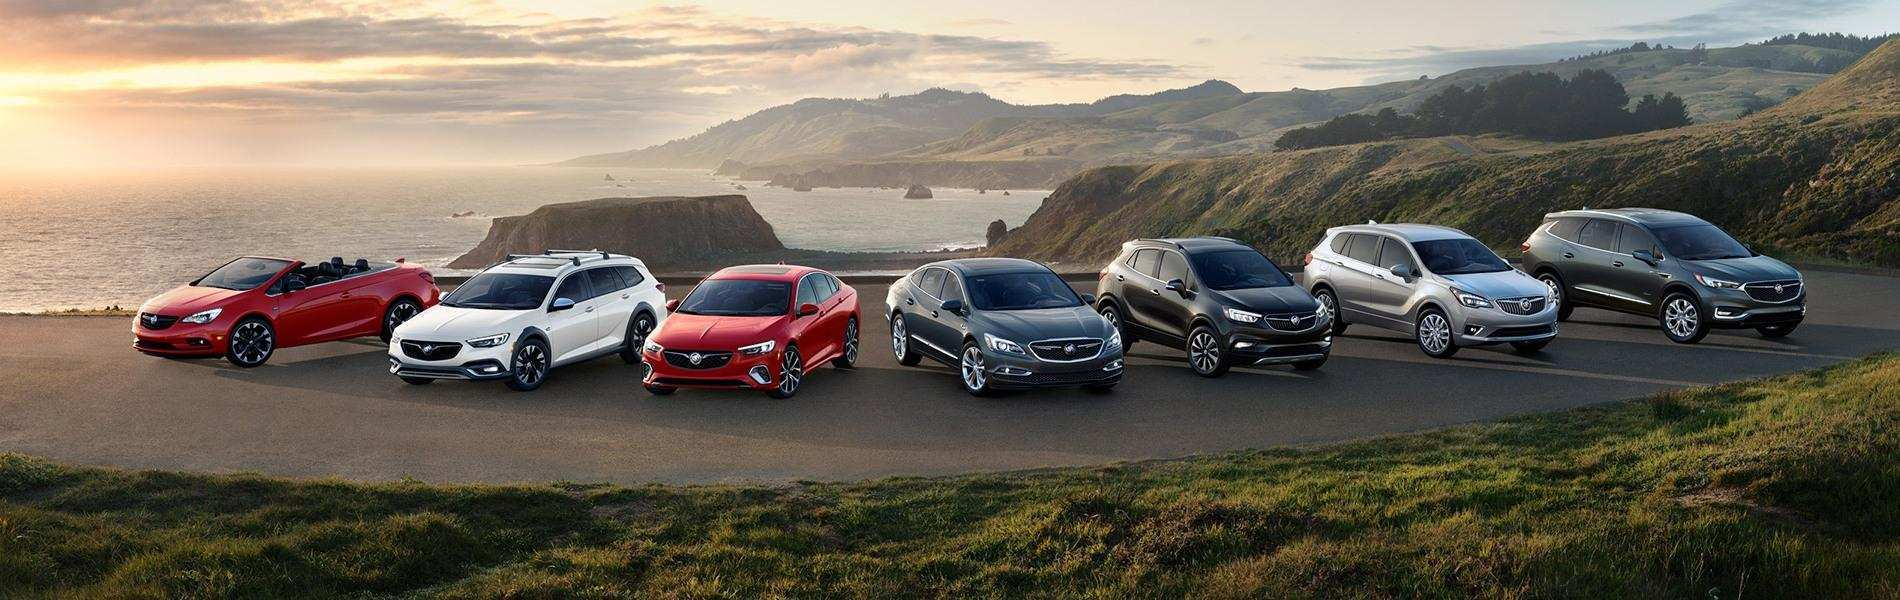 87 New 2019 Buick Lineup Review And Release Date